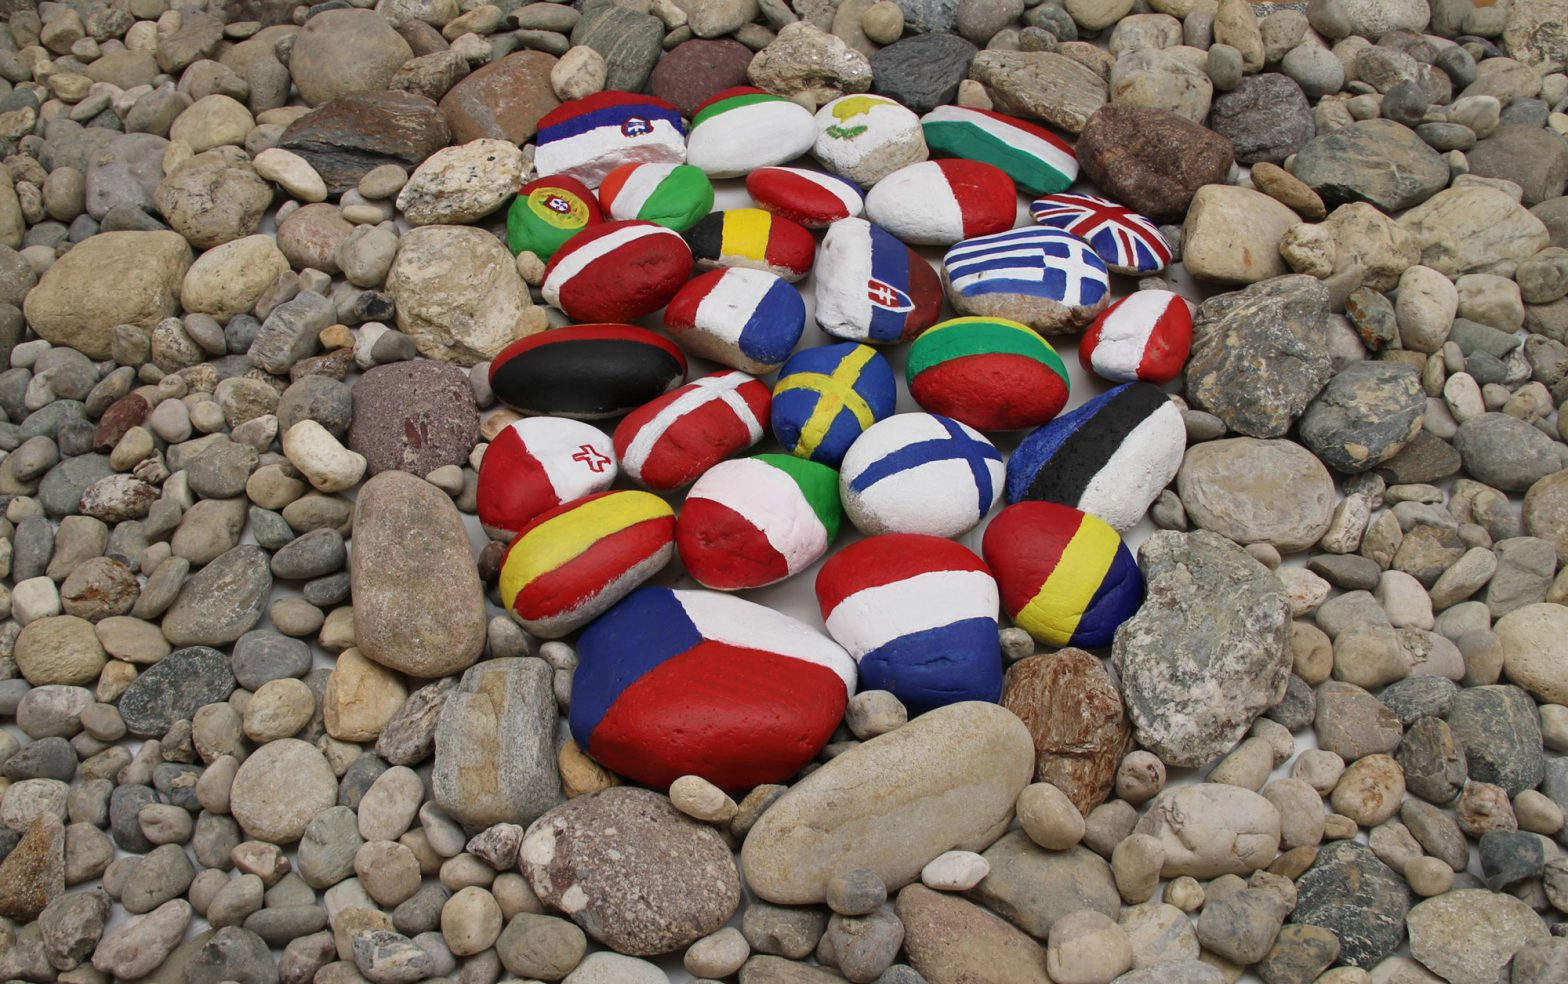 A nest of stones inside the strip. The stones are painted with europen flags.